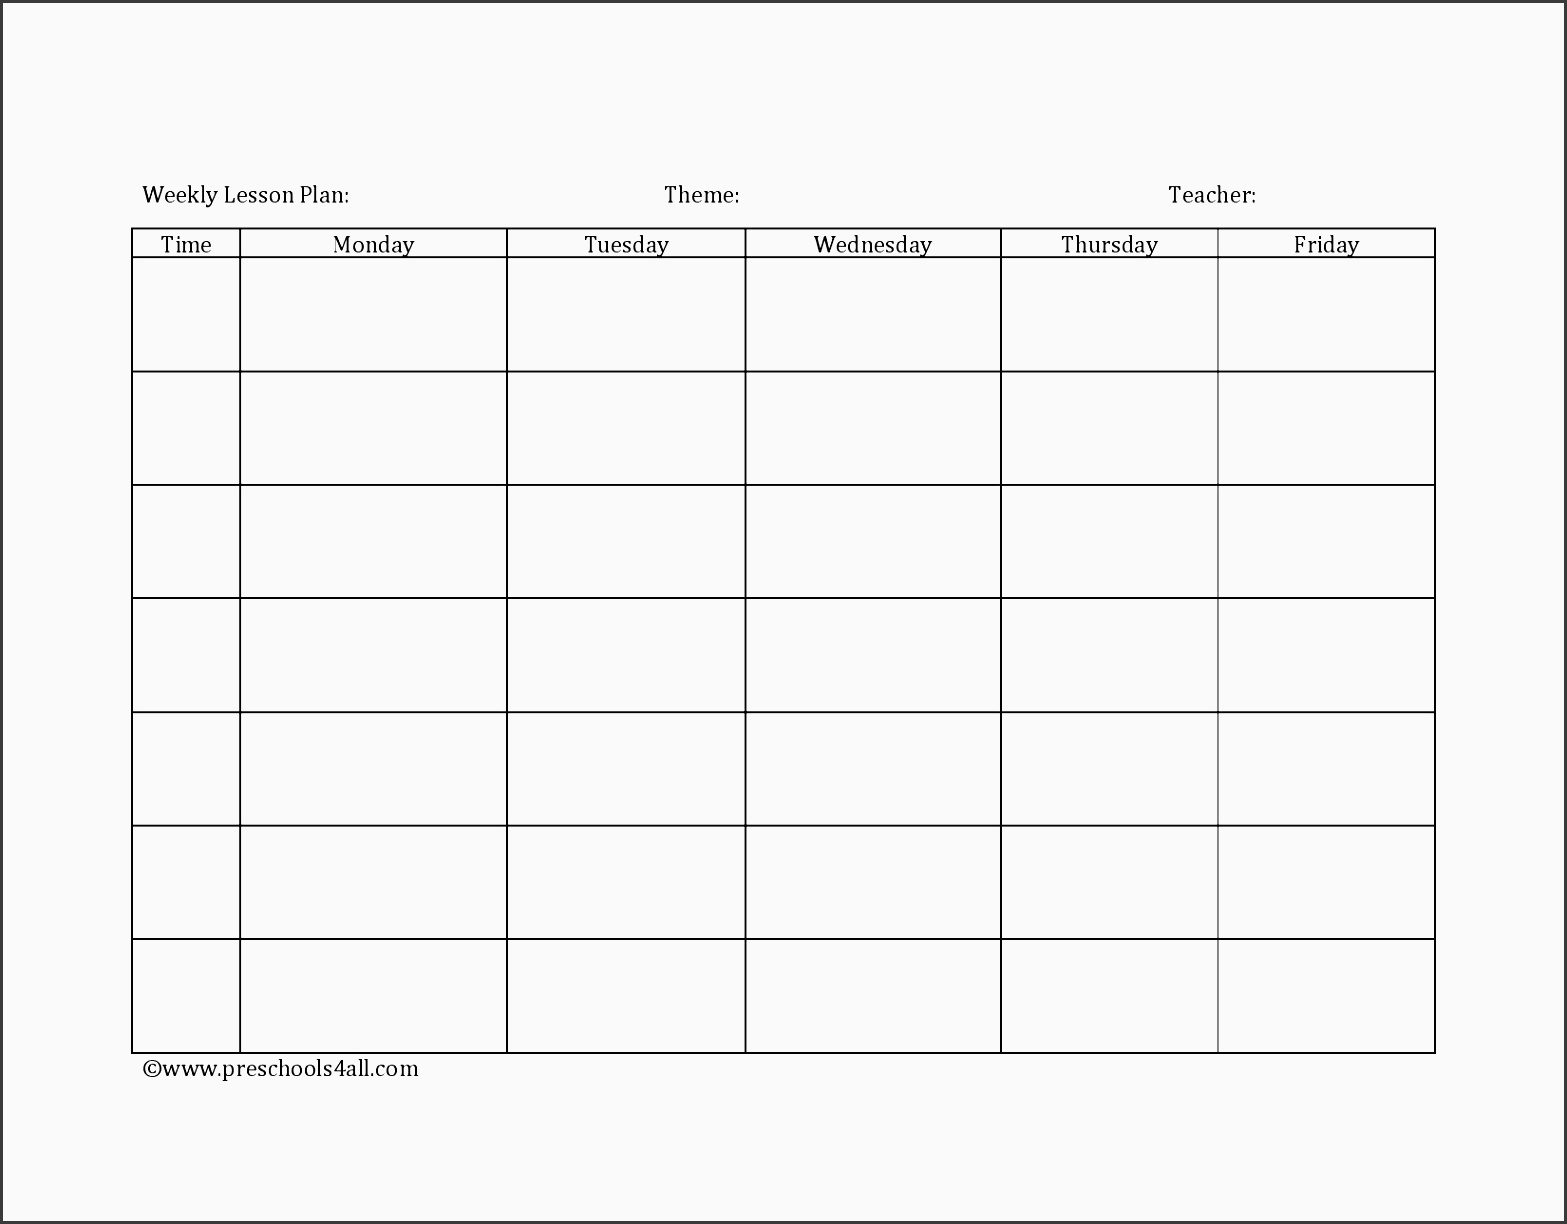 lesson plan book template printable weekly lesson plan lesson plan book template printable